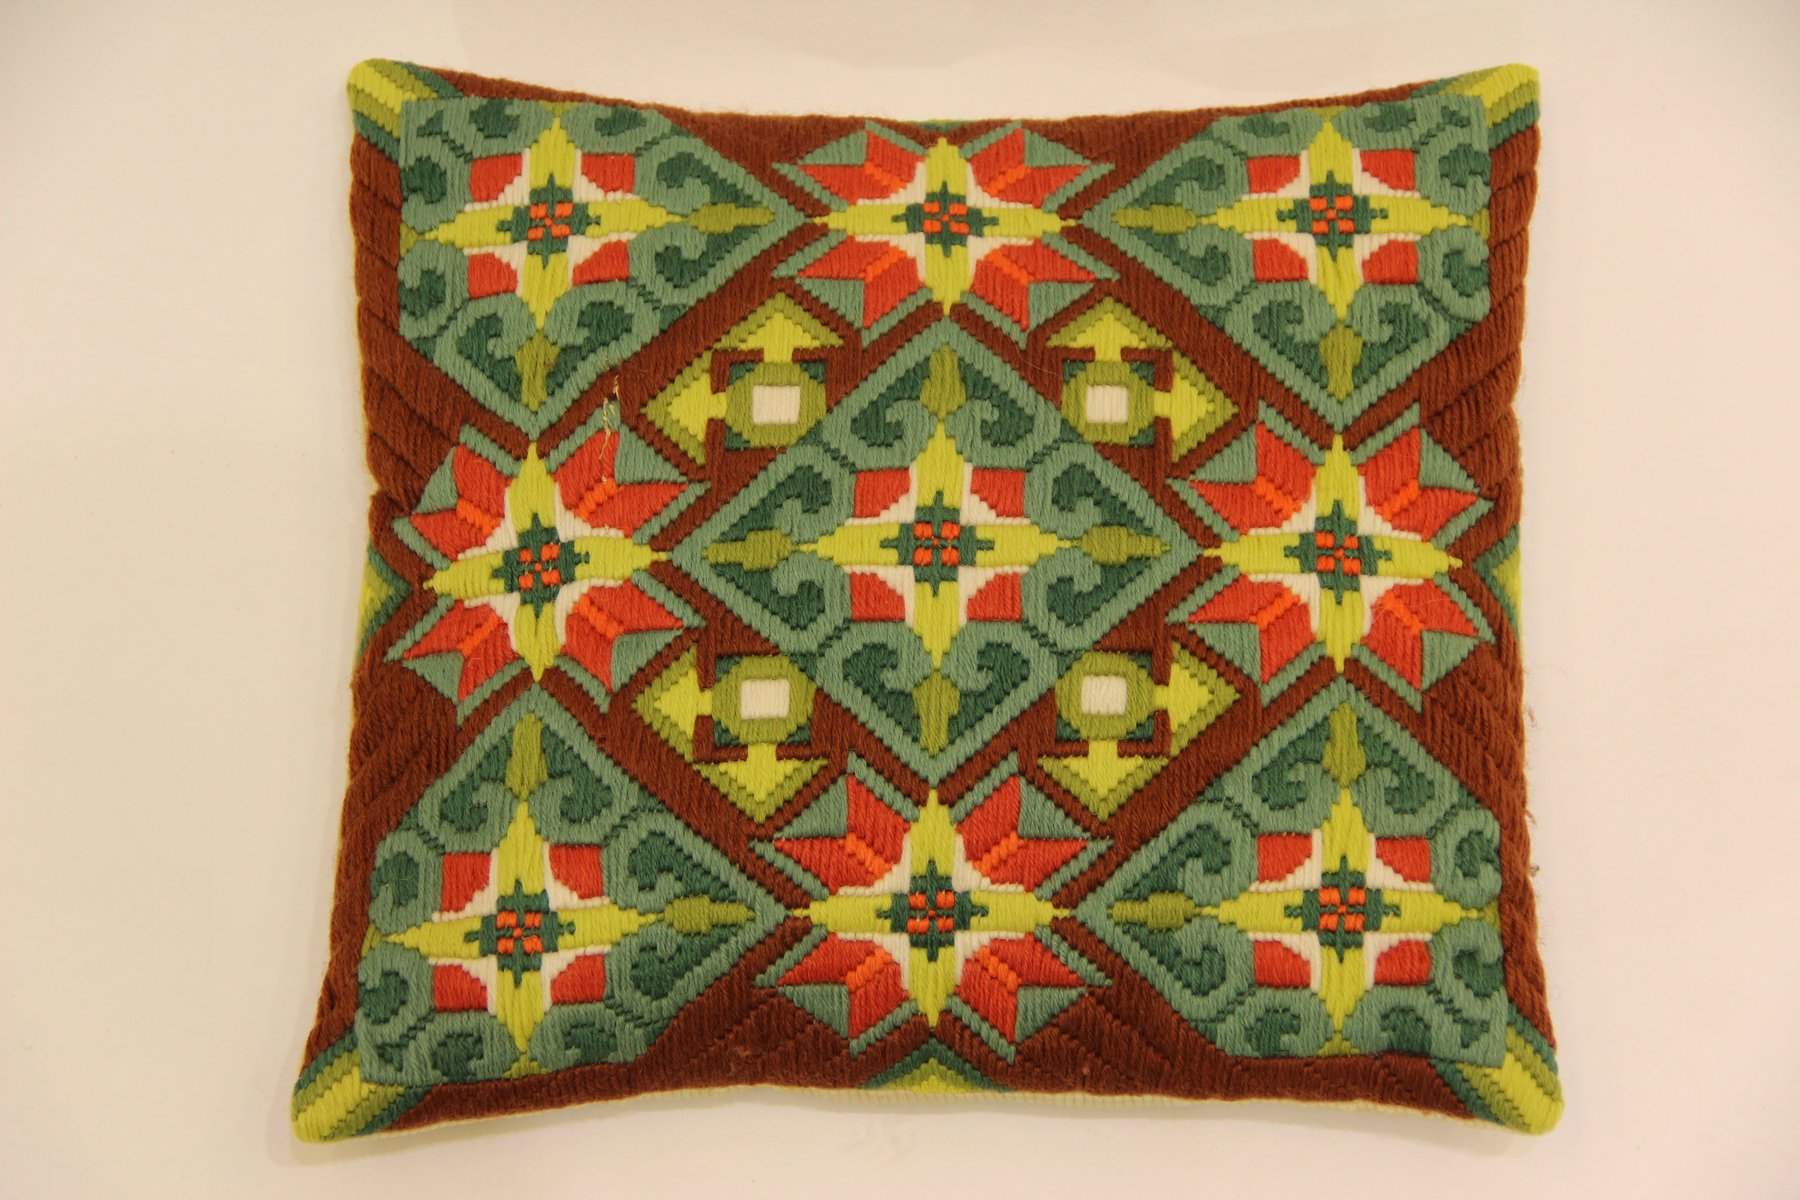 Cushion Sale Vintage Hand Embroidered Sofa Cushion For Sale At Pamono